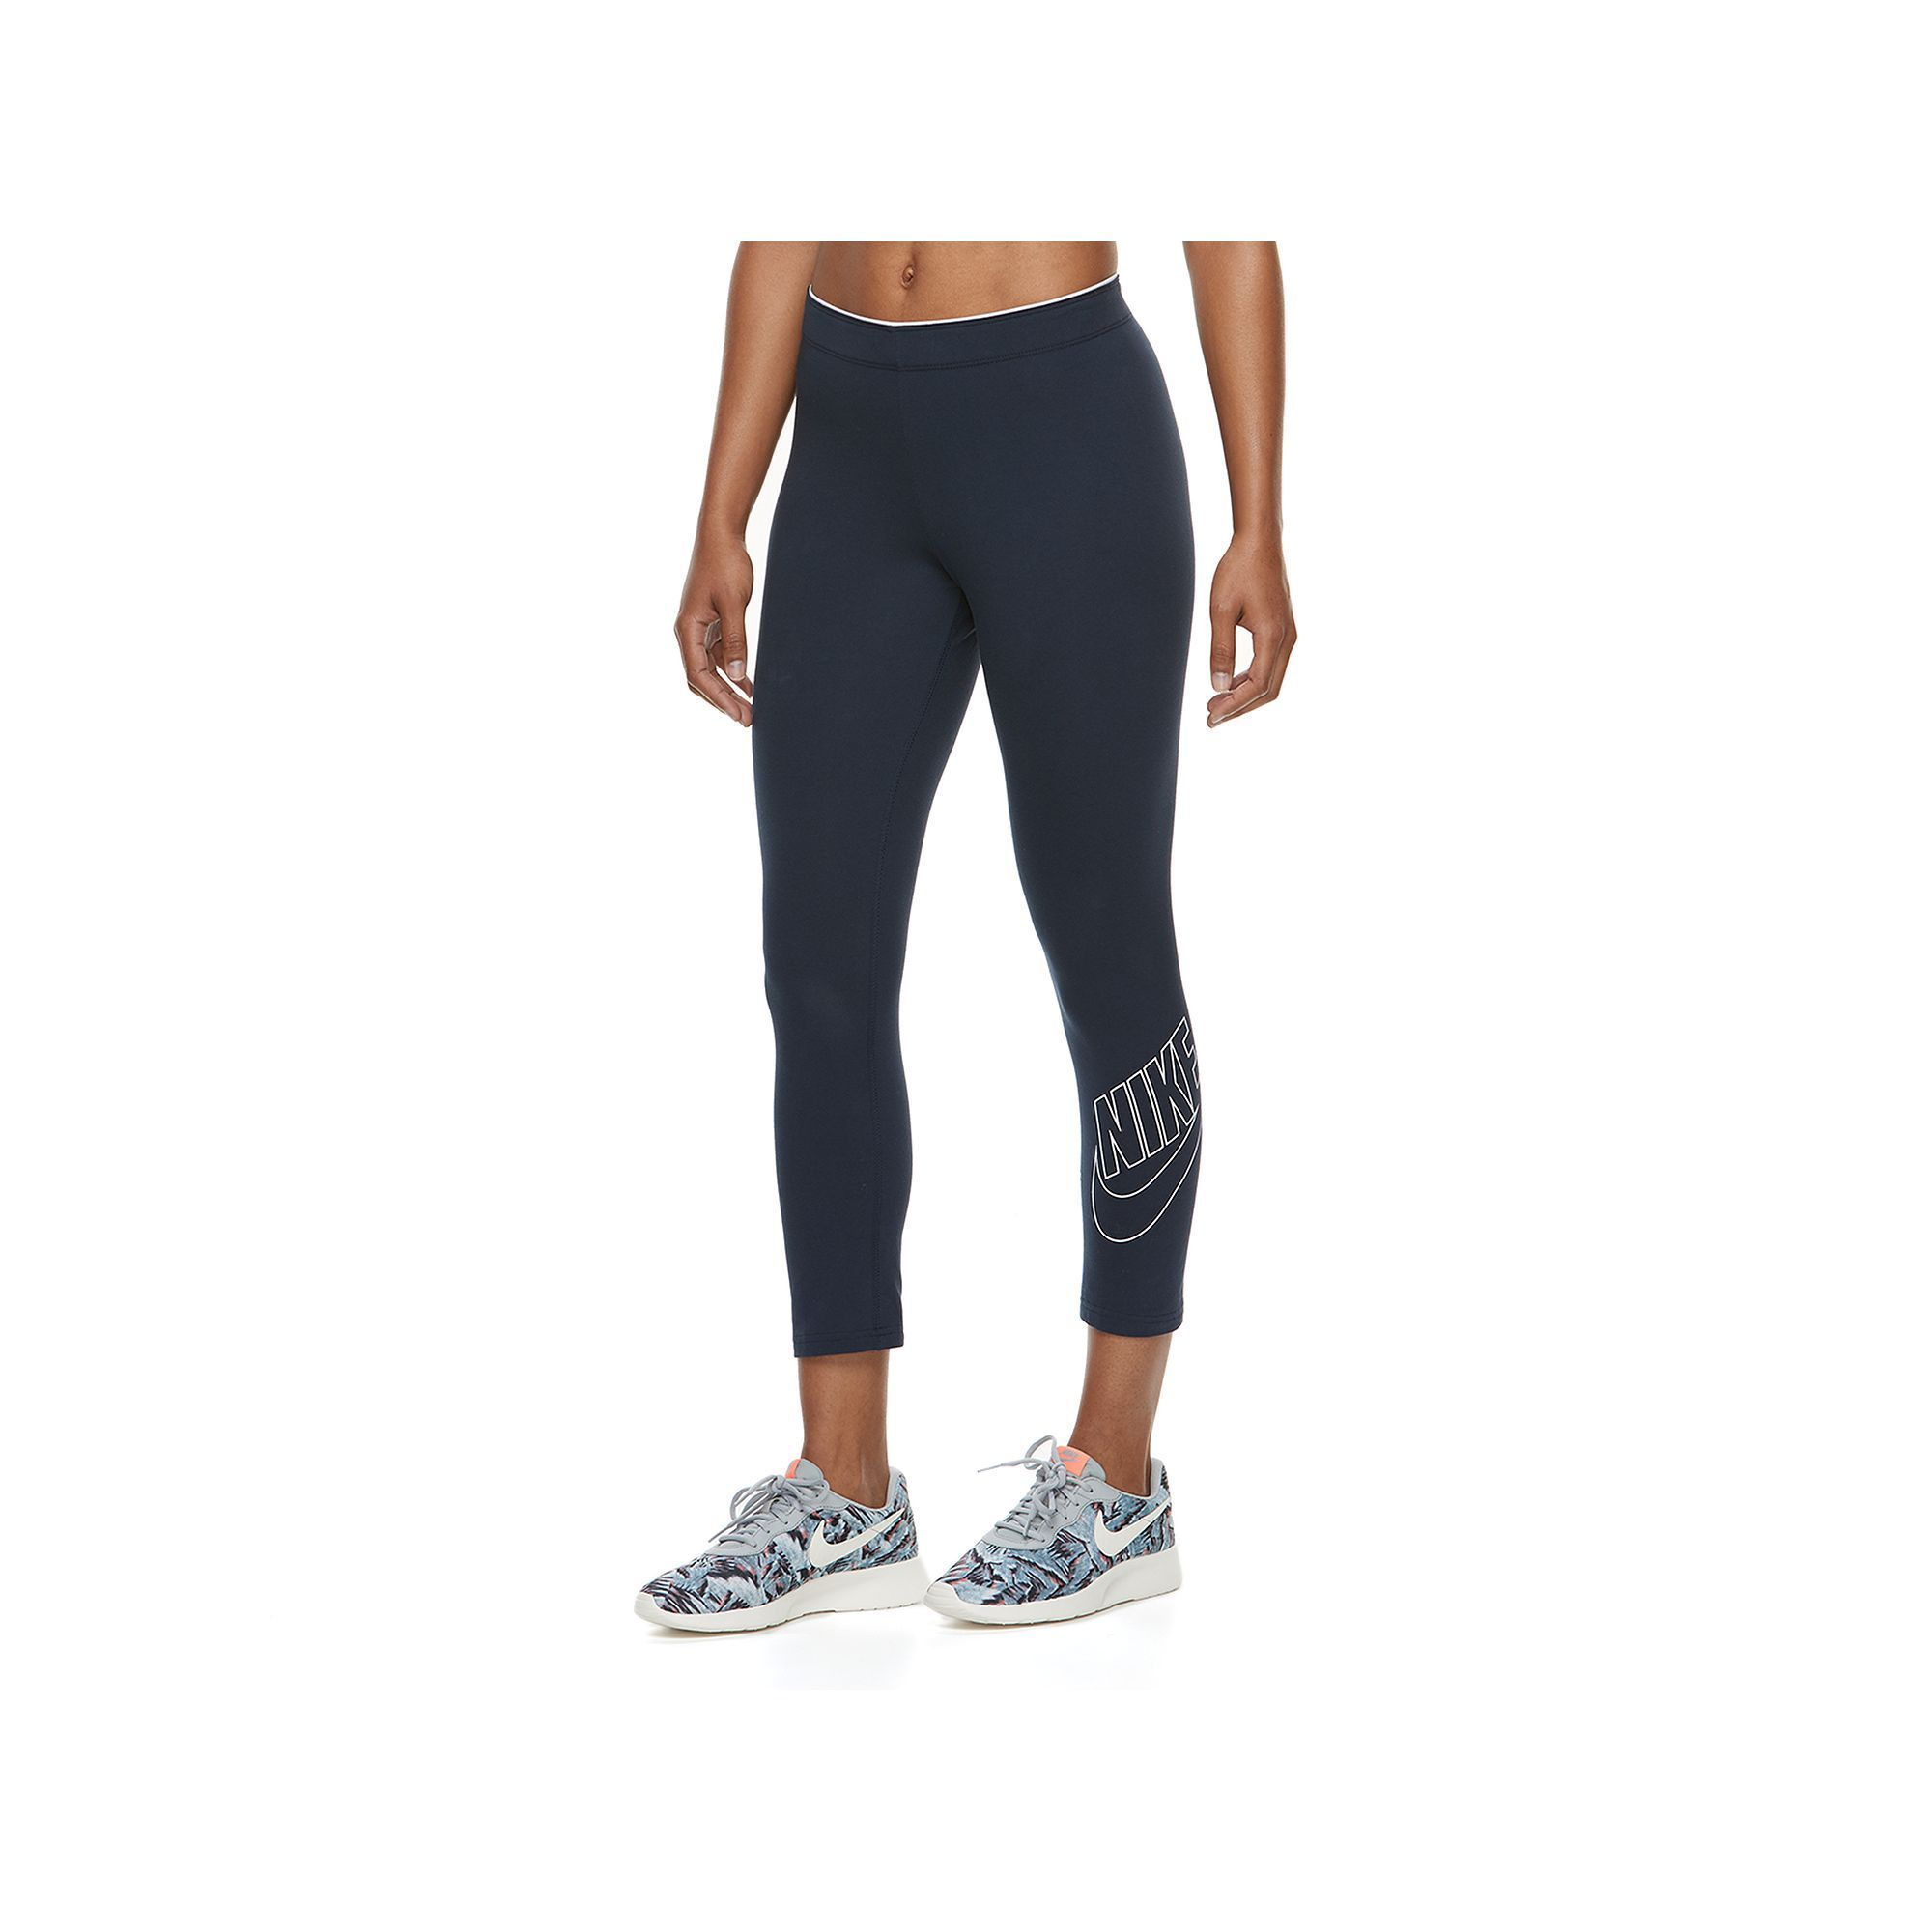 c23ea3dcc Women's Nike Futura Graphic Midrise 3/4 Tights | Products | Nike ...